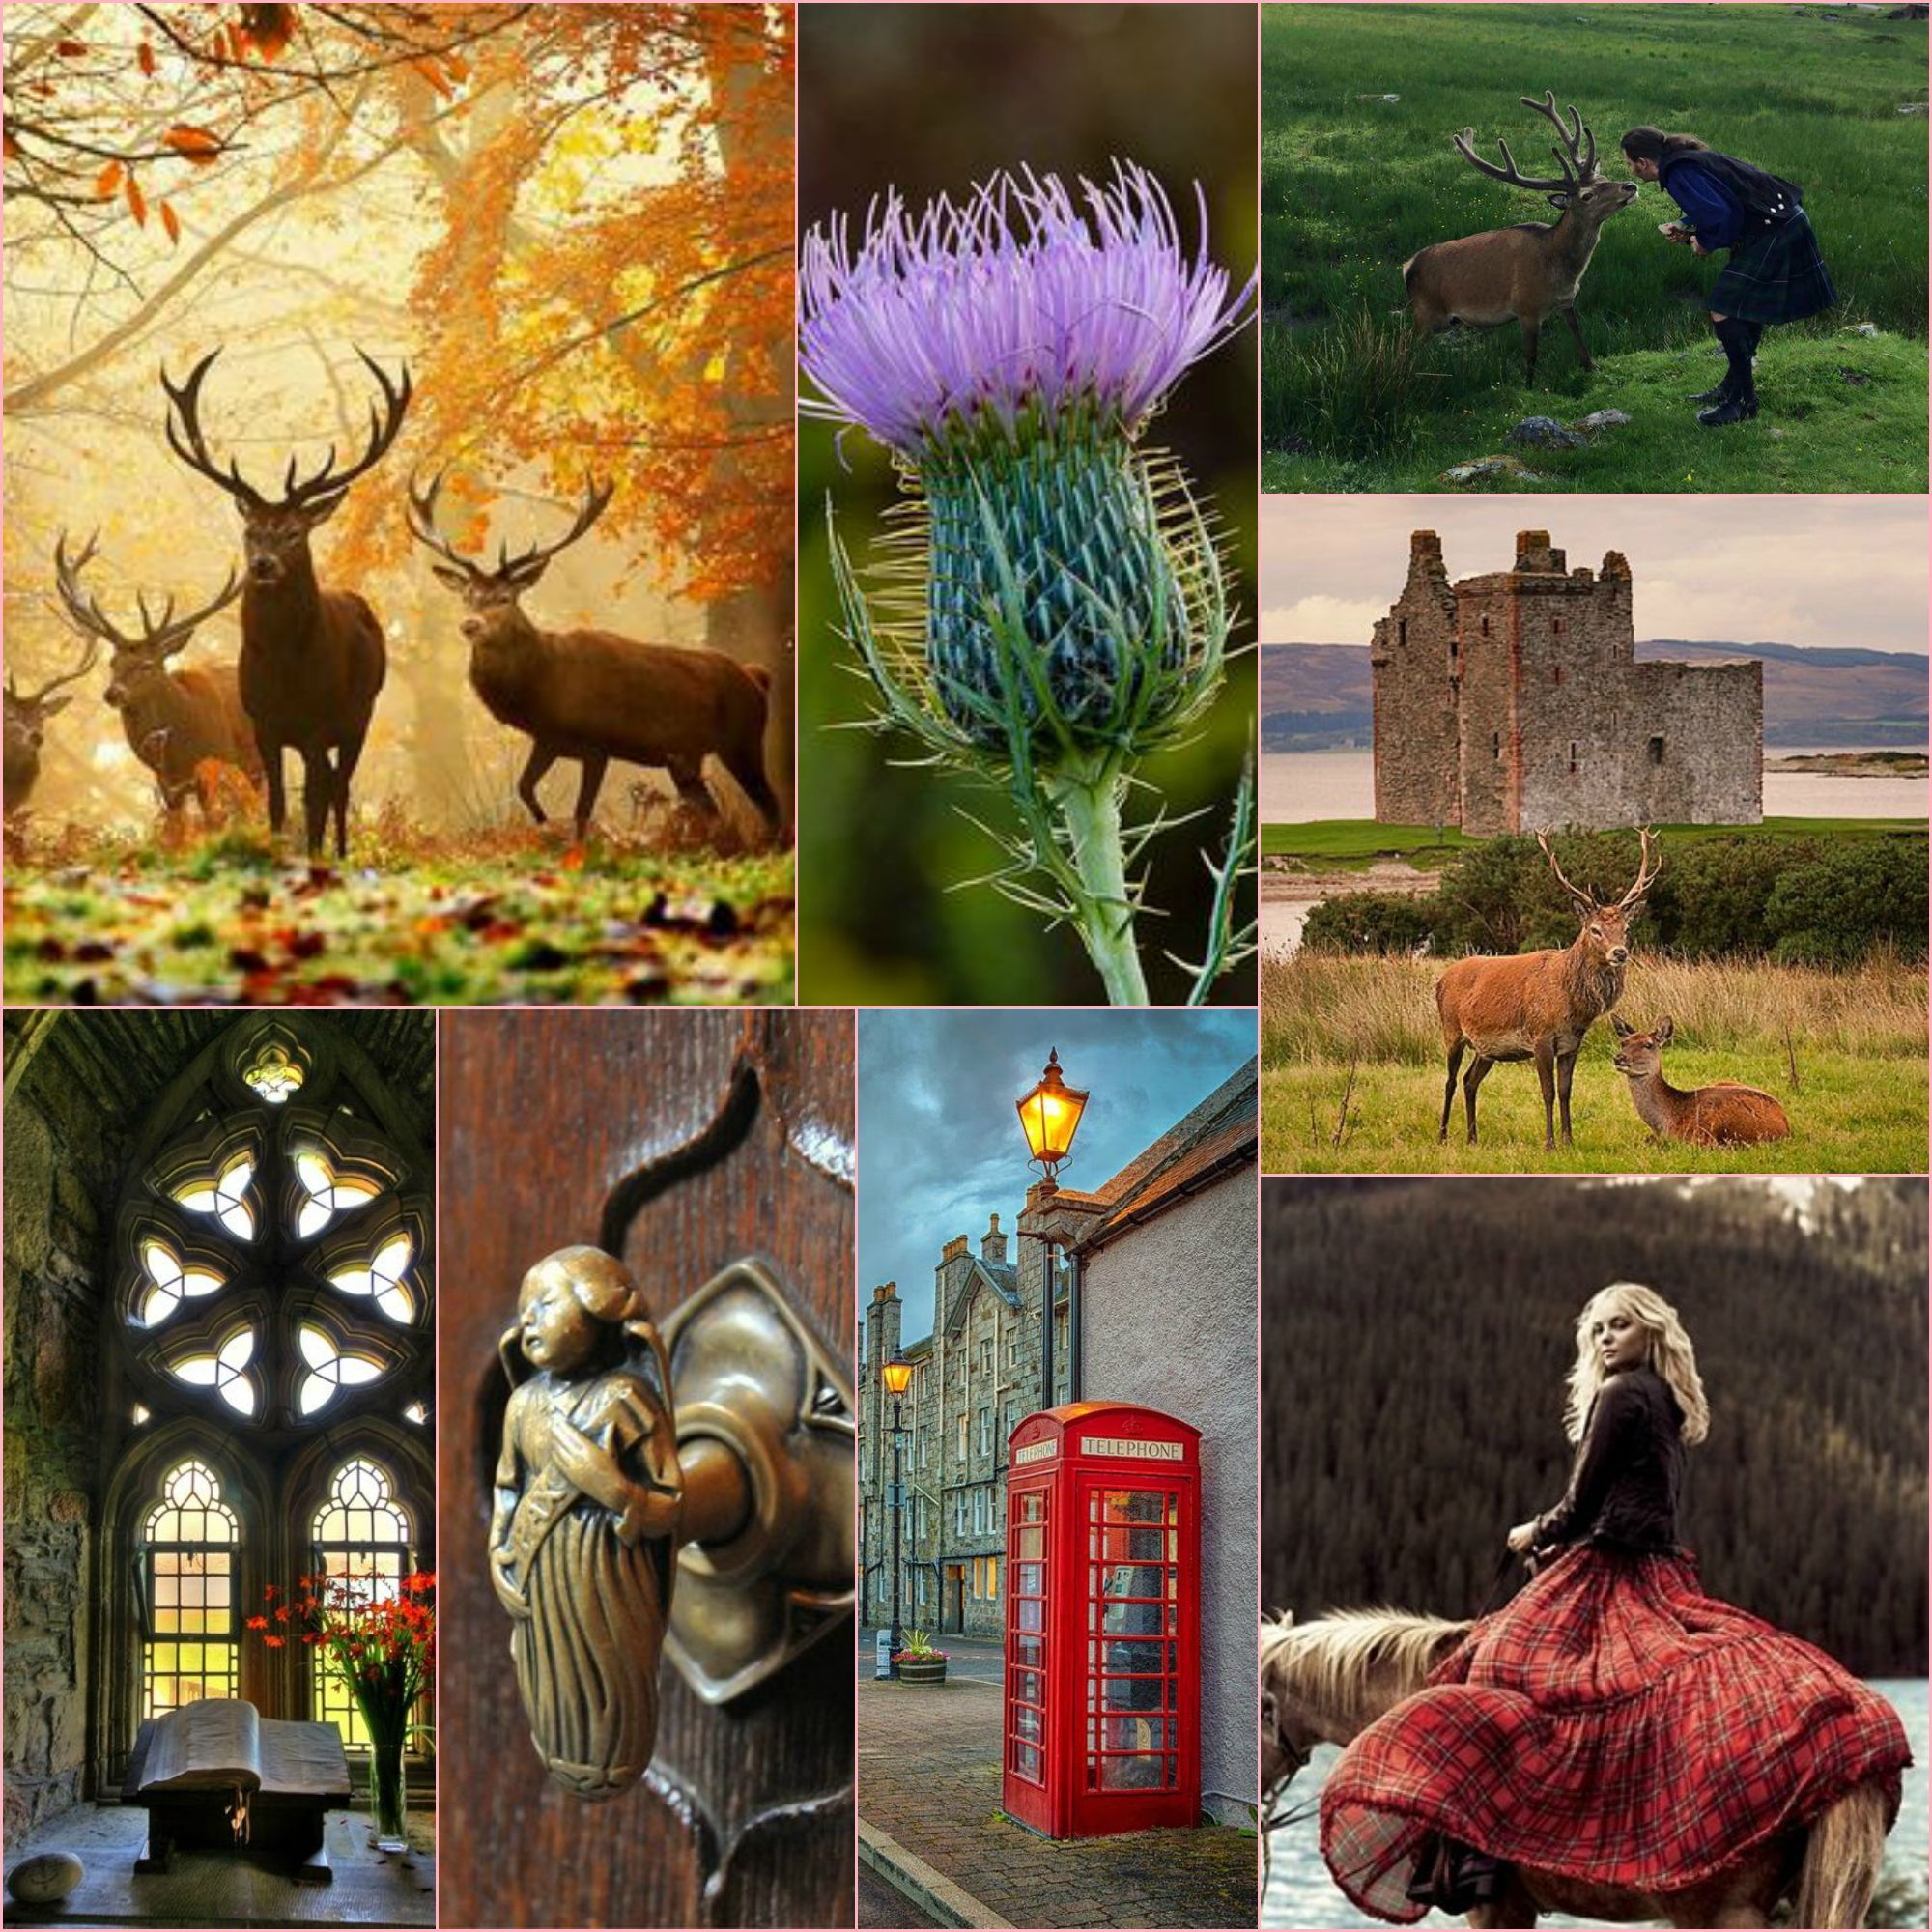 Beautiful Pictures with a English, Victorian, Scottish and Irish twist. https://www.ouwbollig.eu https://www.facebook.com/ouwbollig.eu/?ref=h